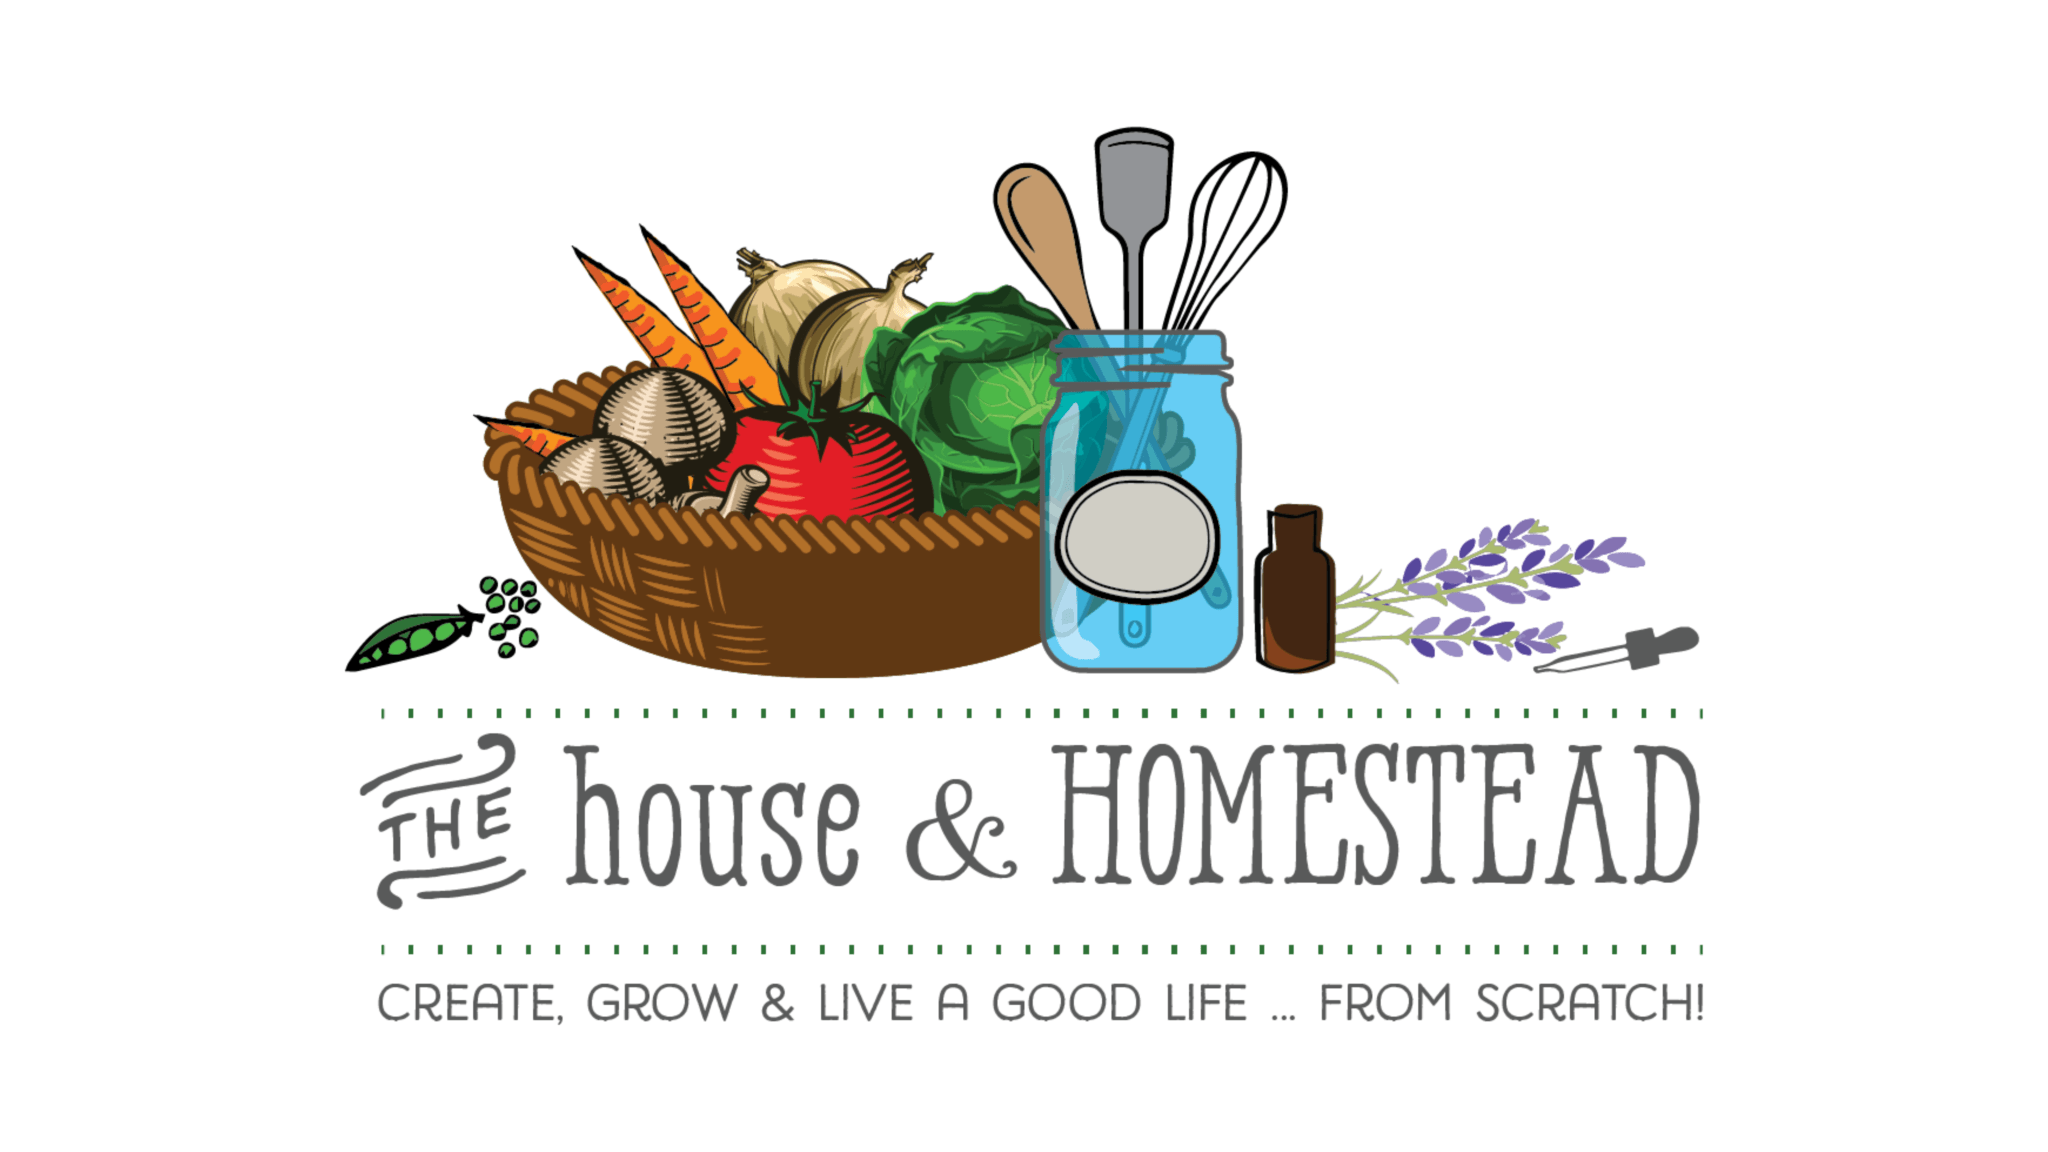 The House & Homestead